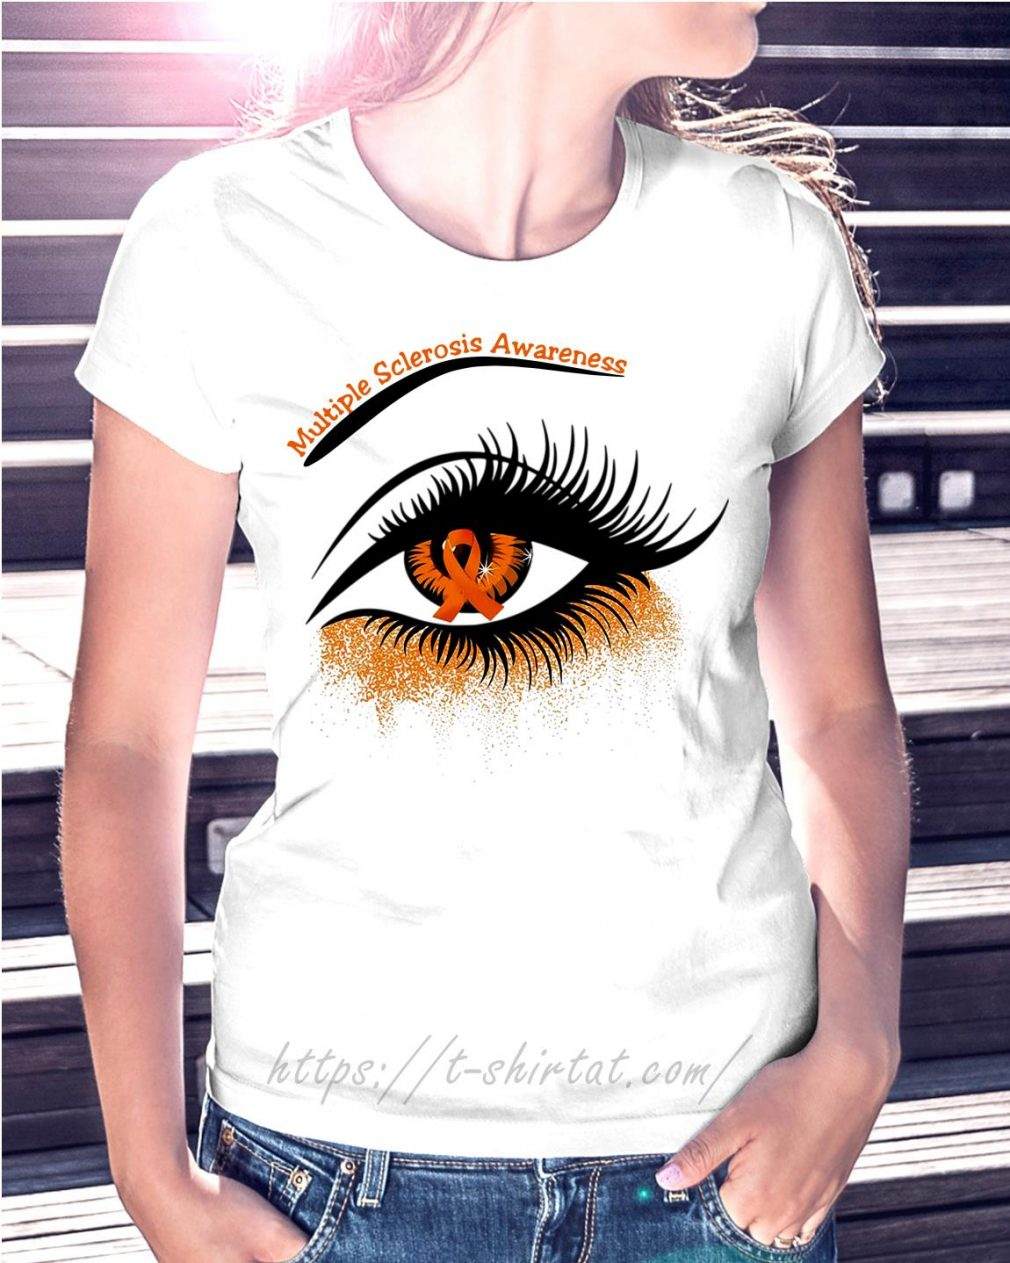 Cancer multiple sclerosis awareness in the eye T-shirt